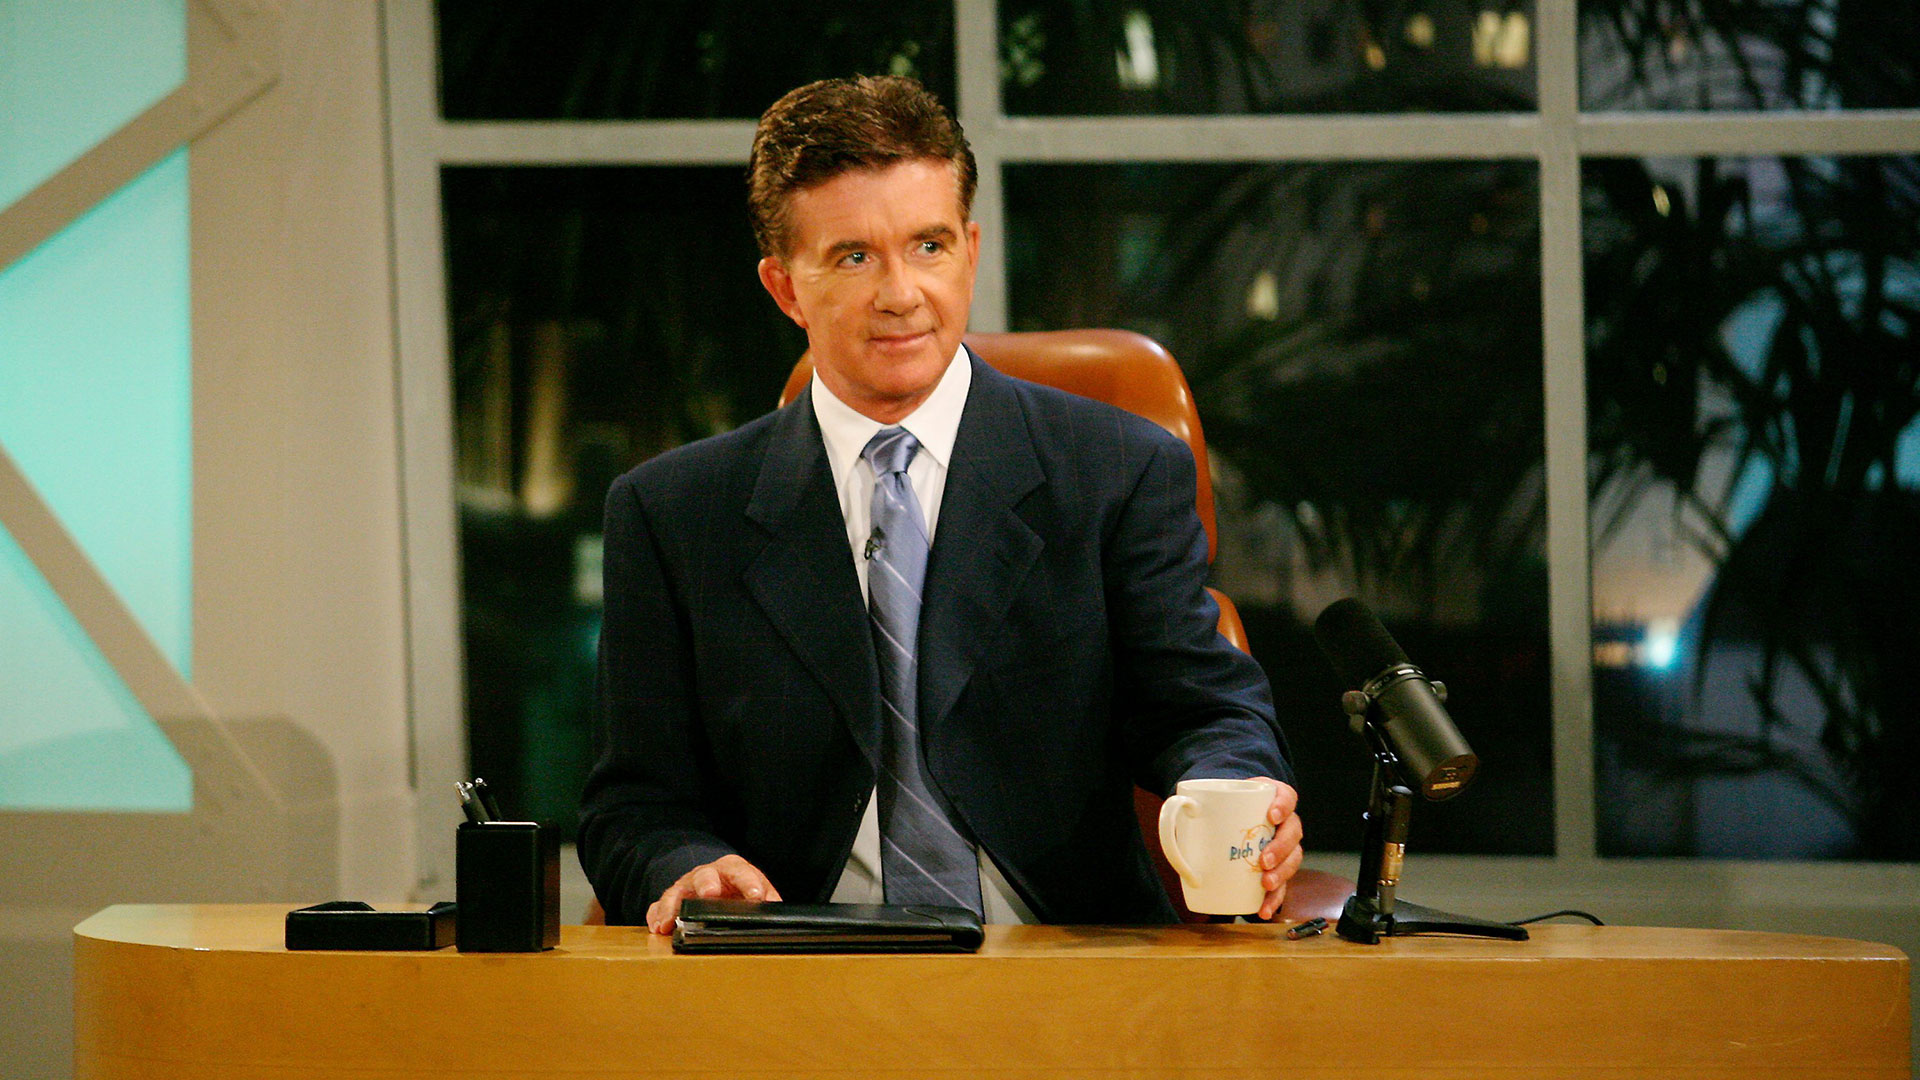 Alan Thicke